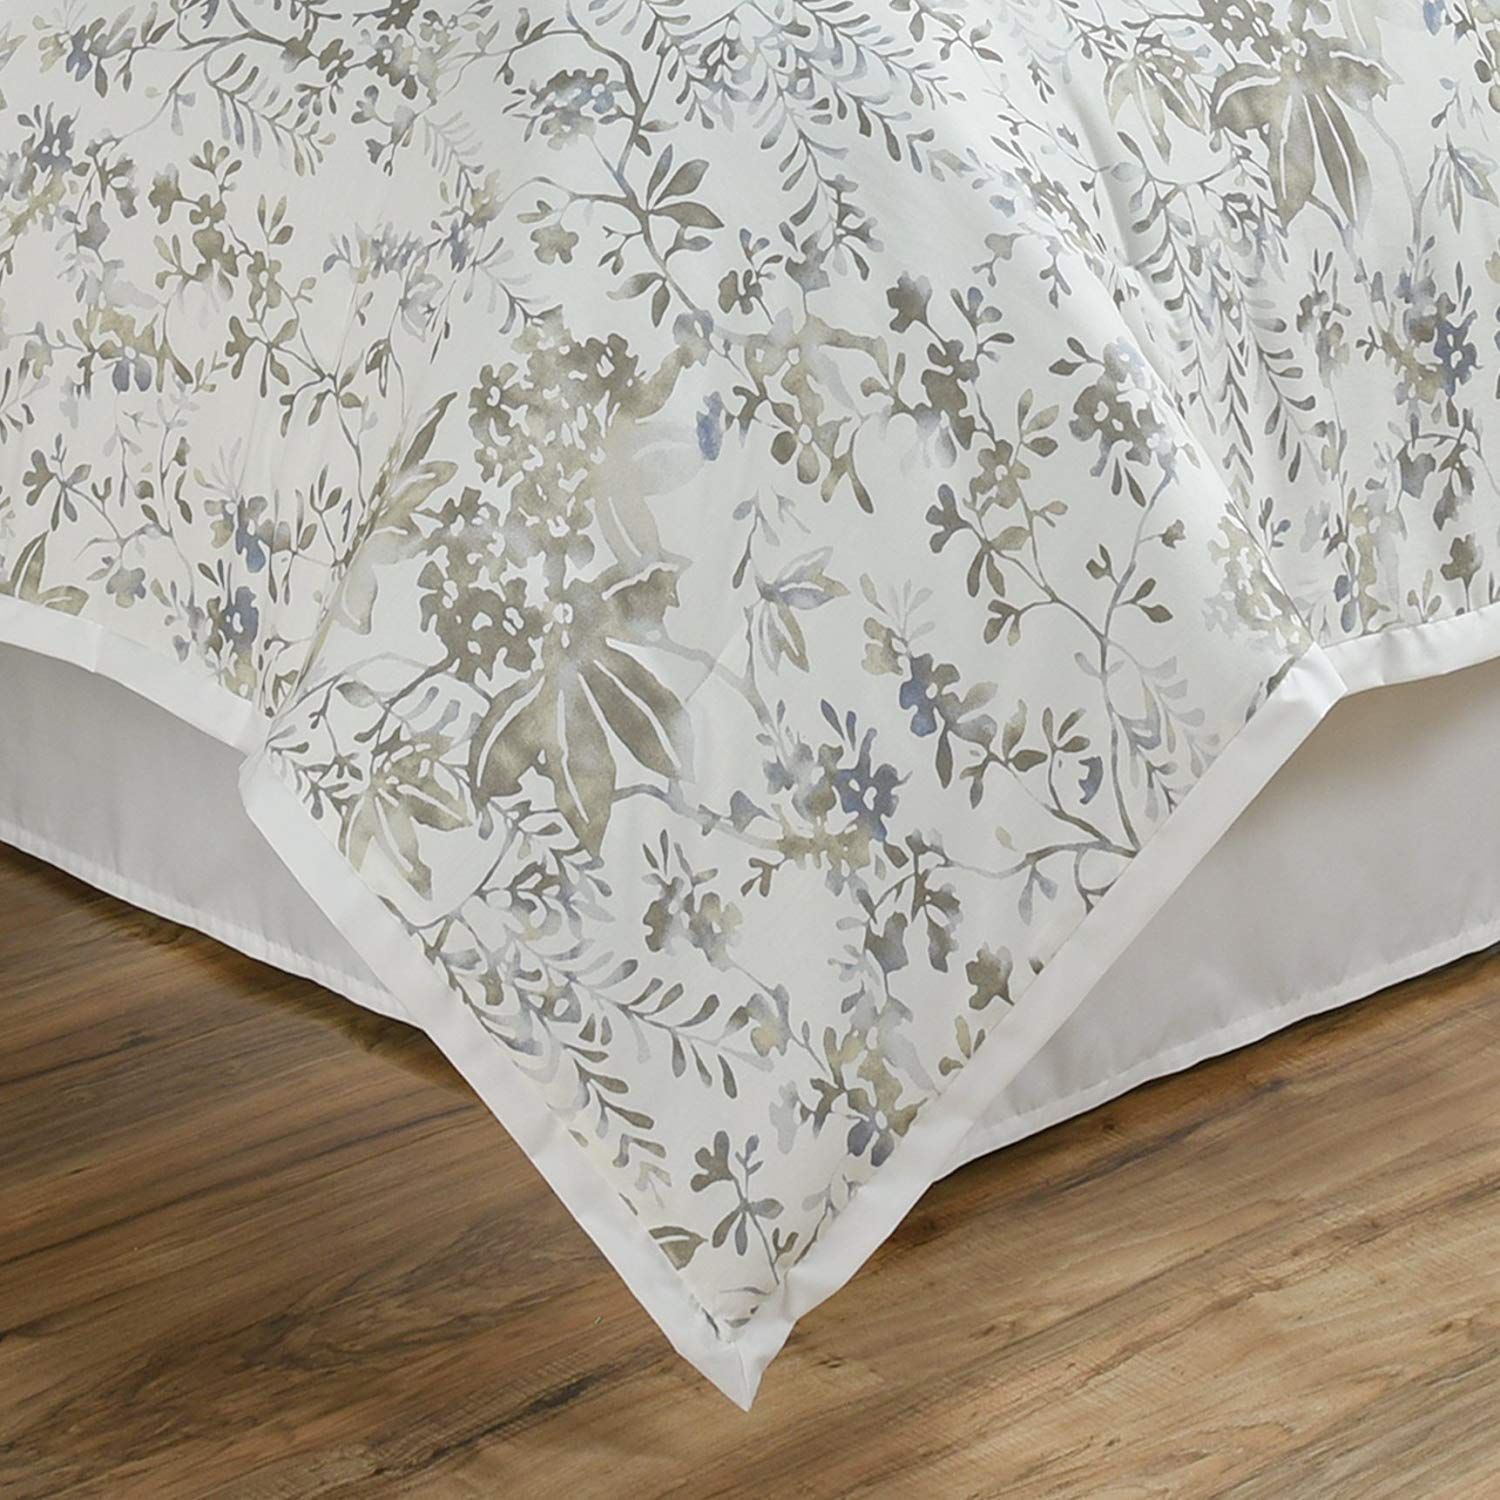 Real Bettdecken Über 100 Bauernbettdecken Und Rustikale Bettdecken - Bauernhaustore#bauernbettdecken #bauernha… | Farmhouse Bedding Sets, Farmhouse Bedroom Decor, Farmhouse Bedding